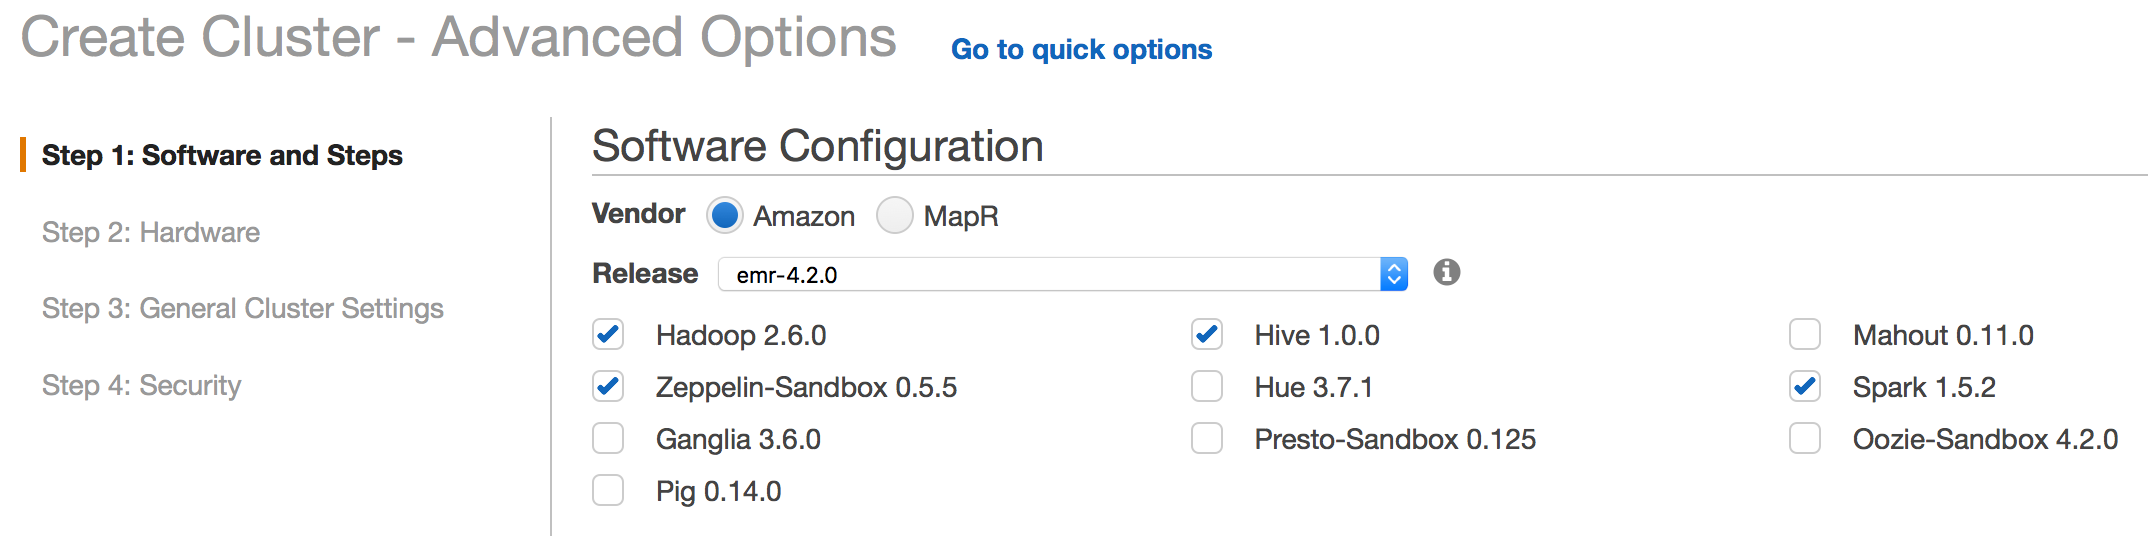 Building a Recommendation Engine with Spark ML on Amazon EMR